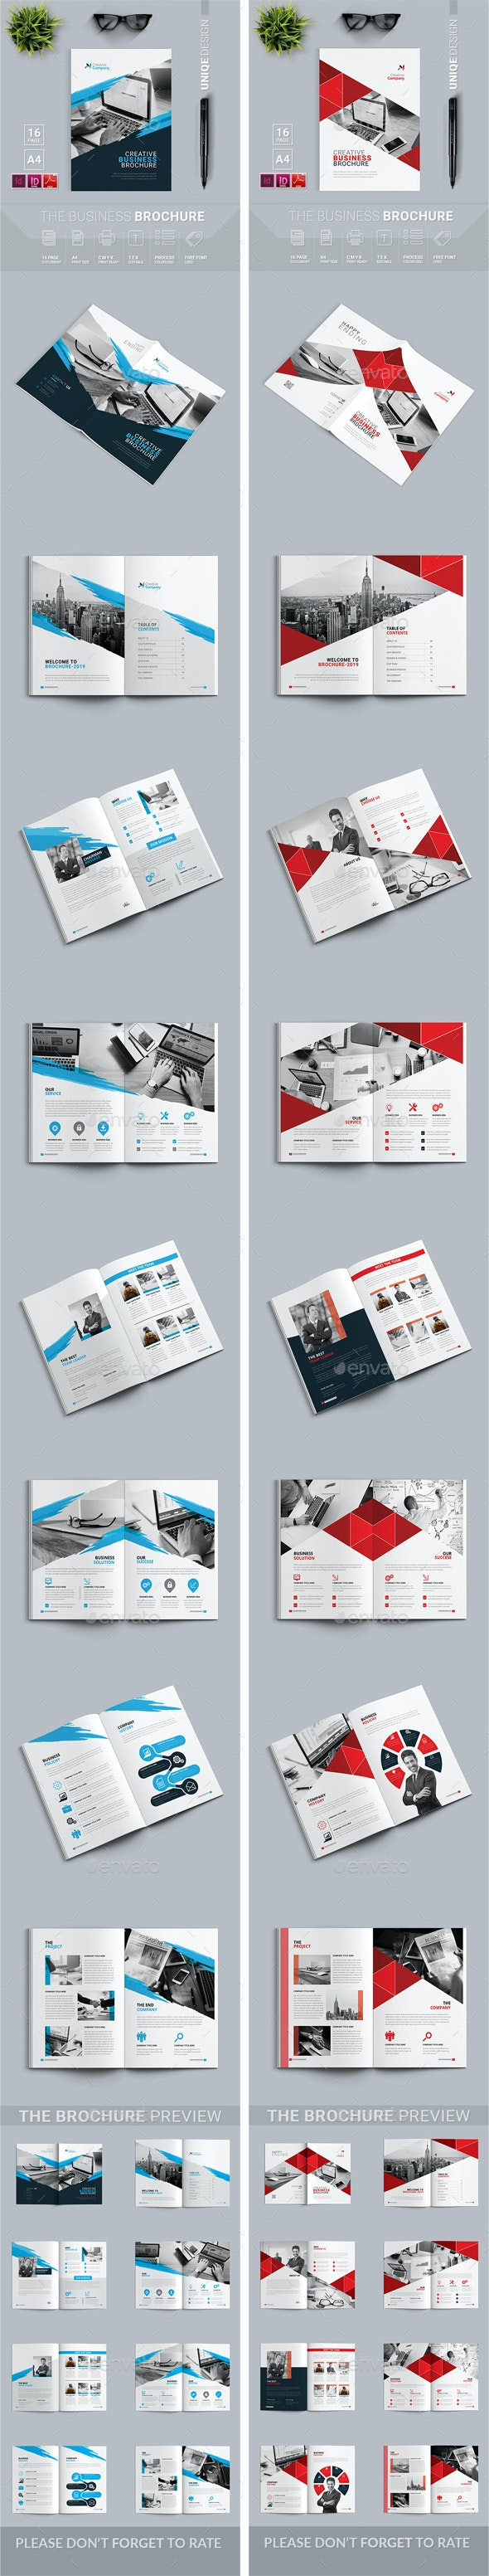 Brochure Bundle 2 in 1 - Brochures Print Templates